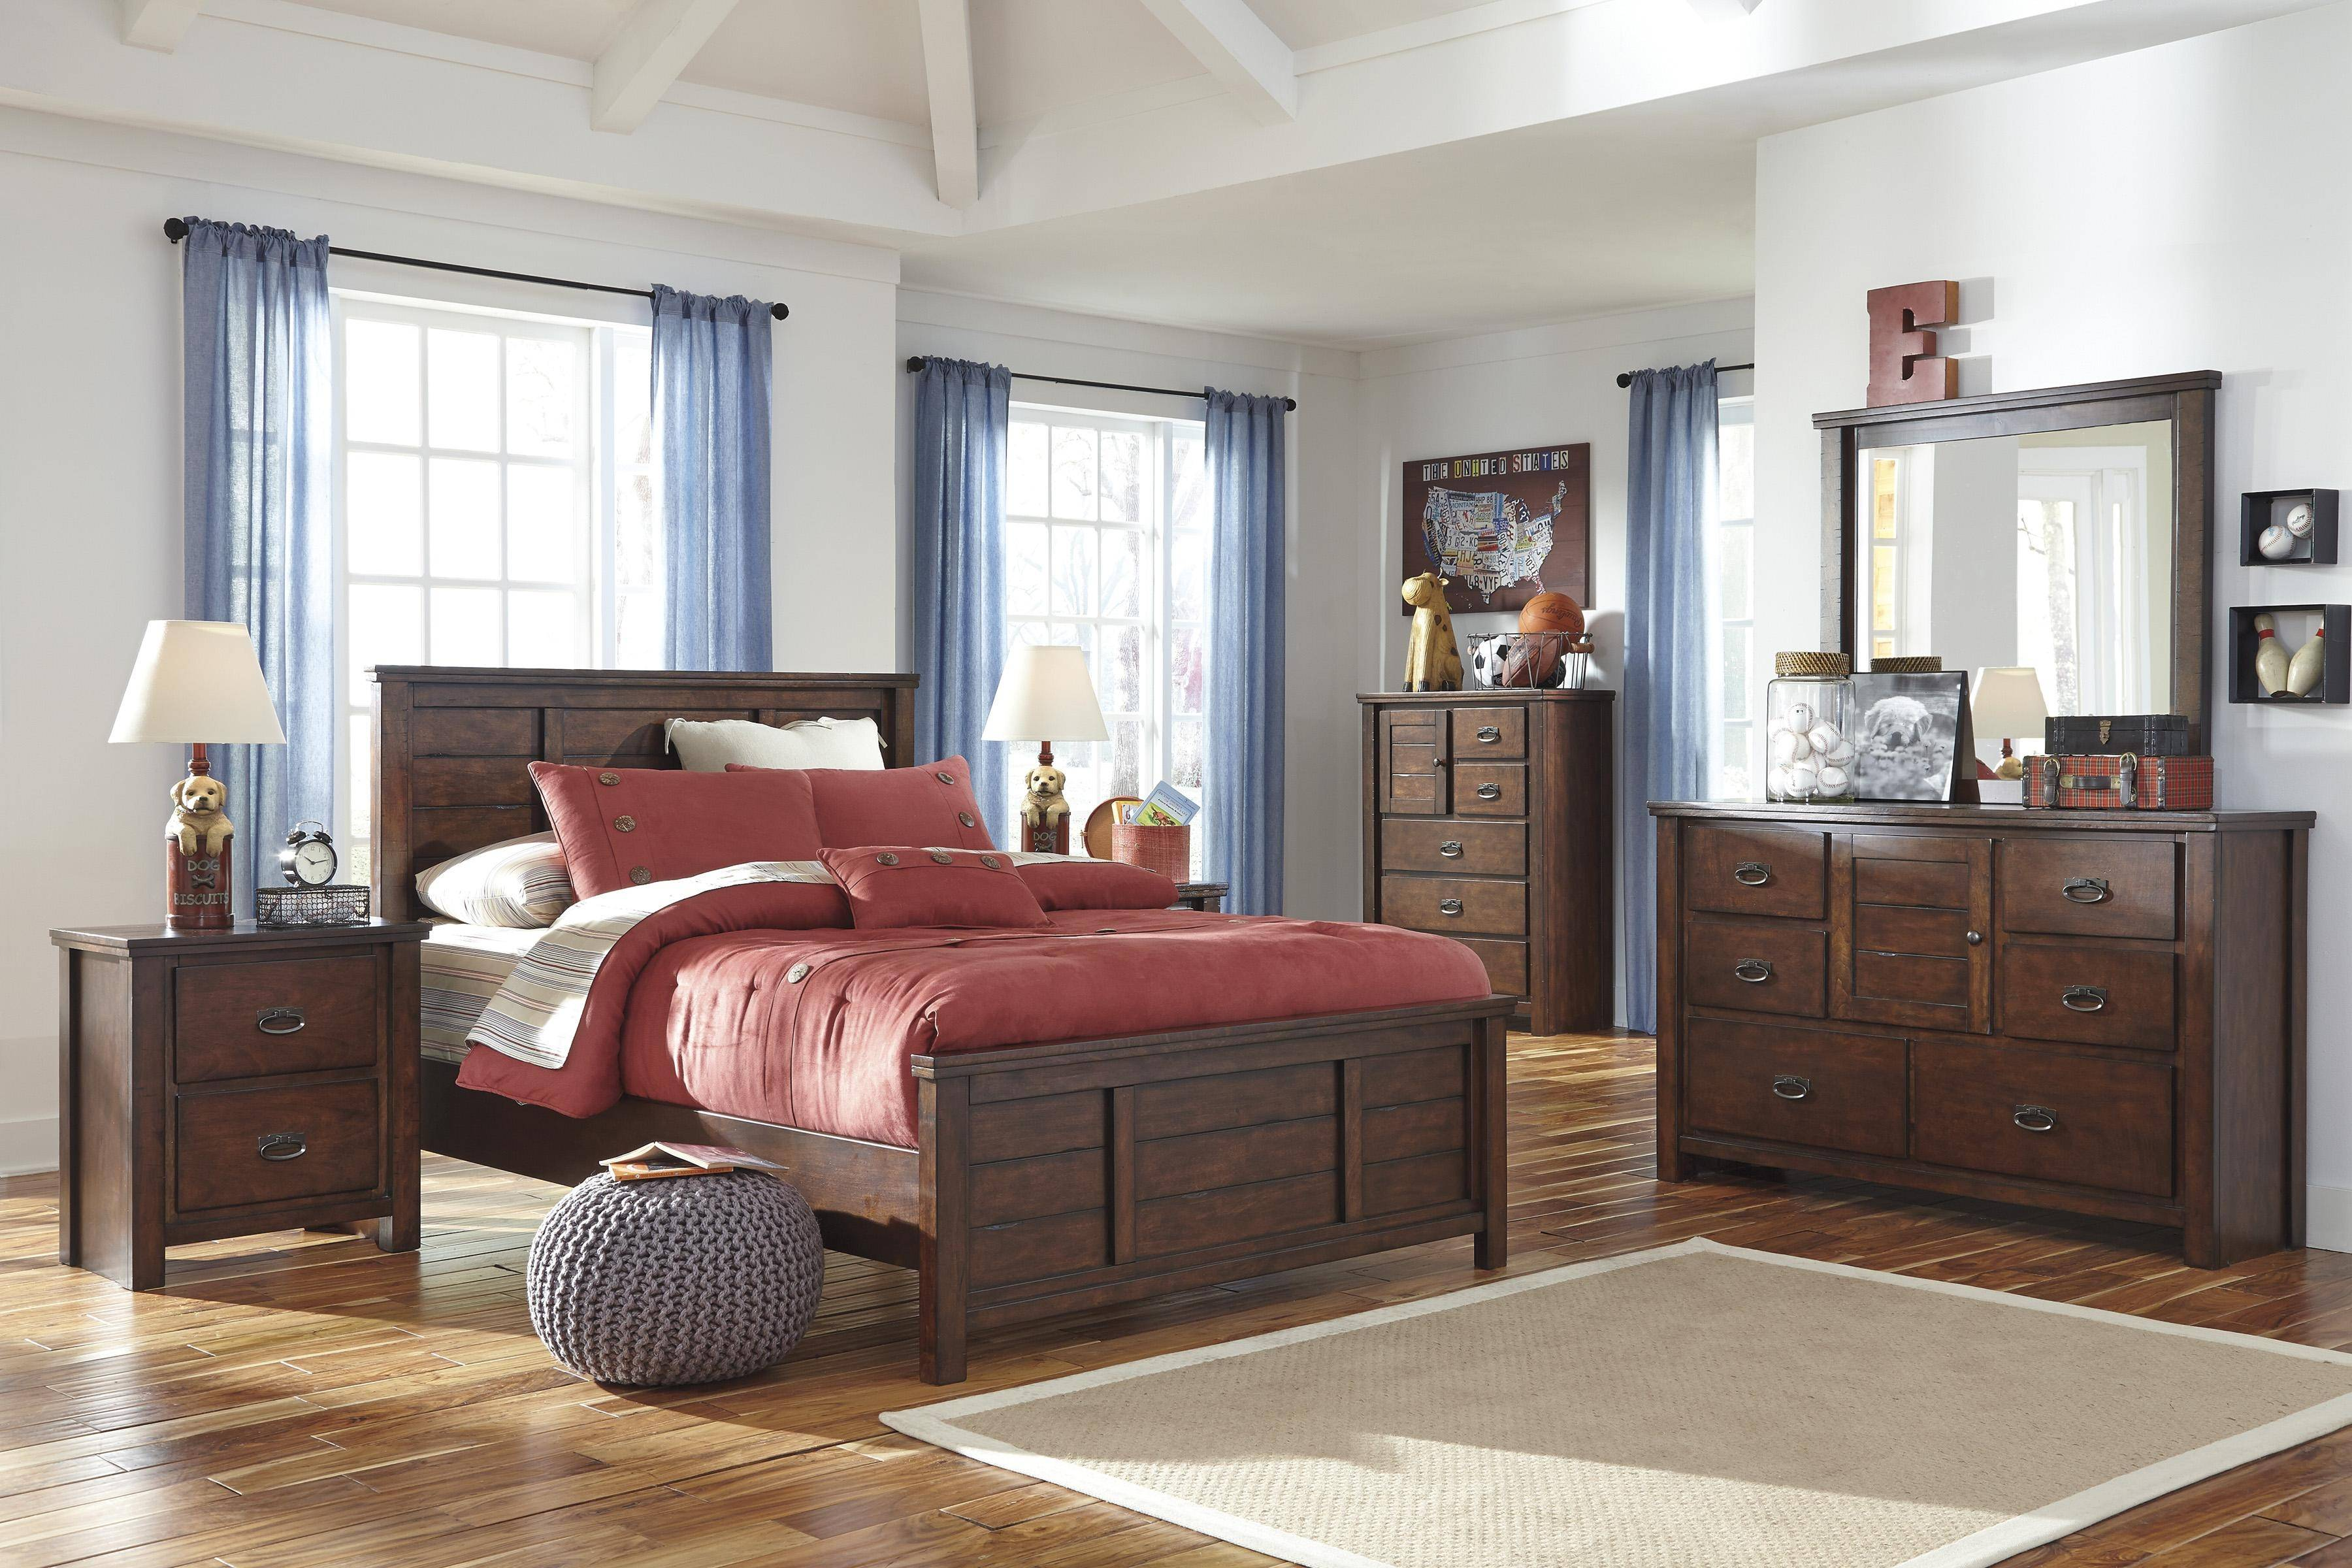 ashley ladiville b567 full size panel bedroom set 6pcs in